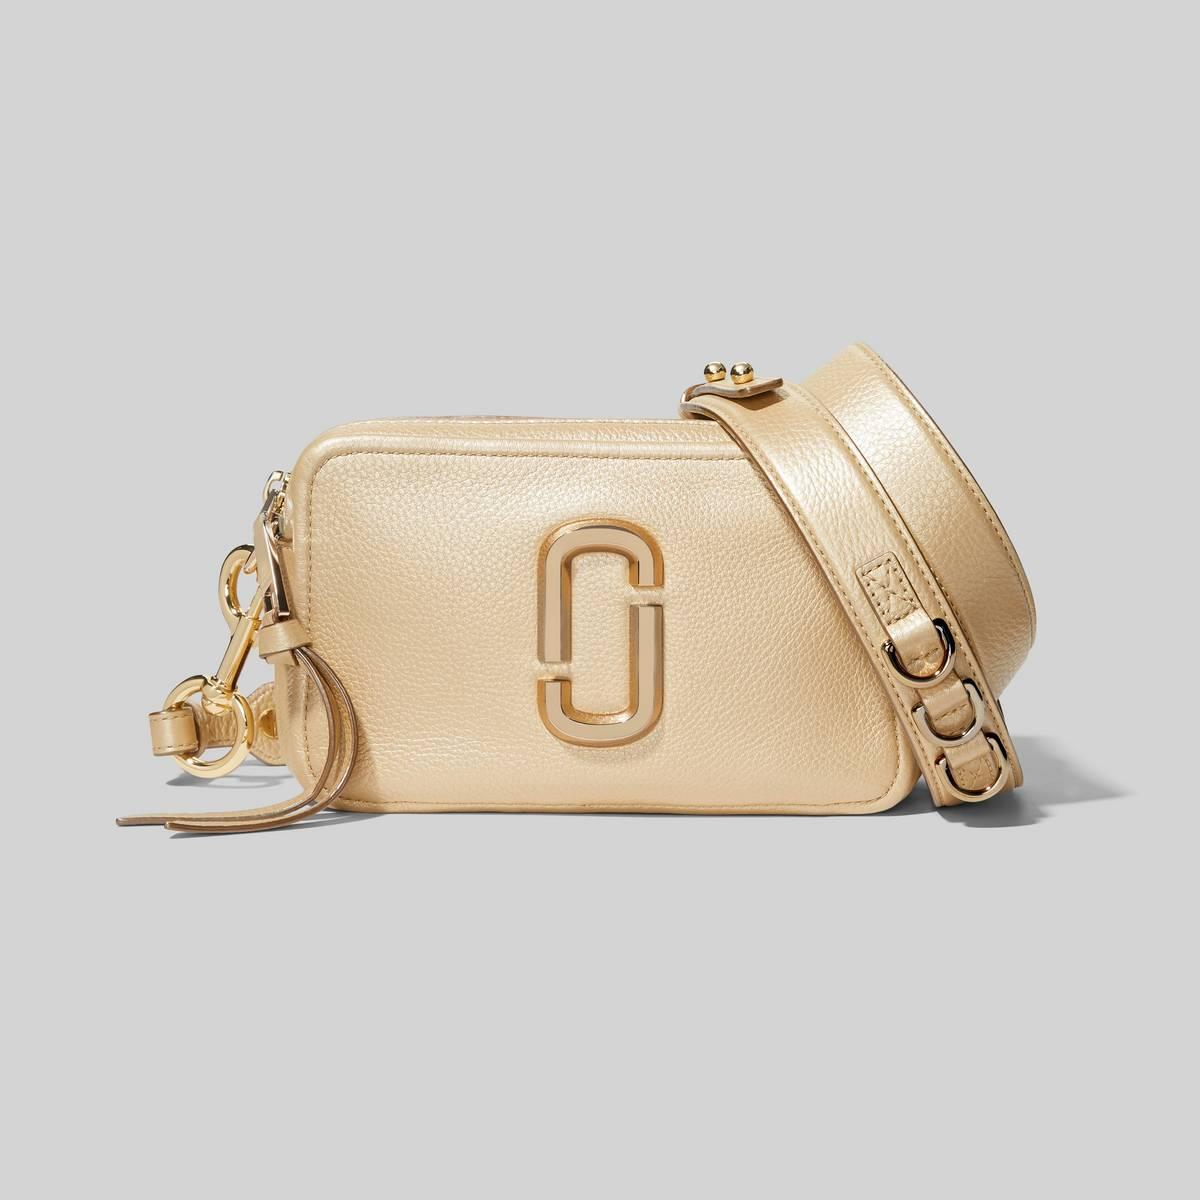 The Softshot Pearlized Bag in Gold